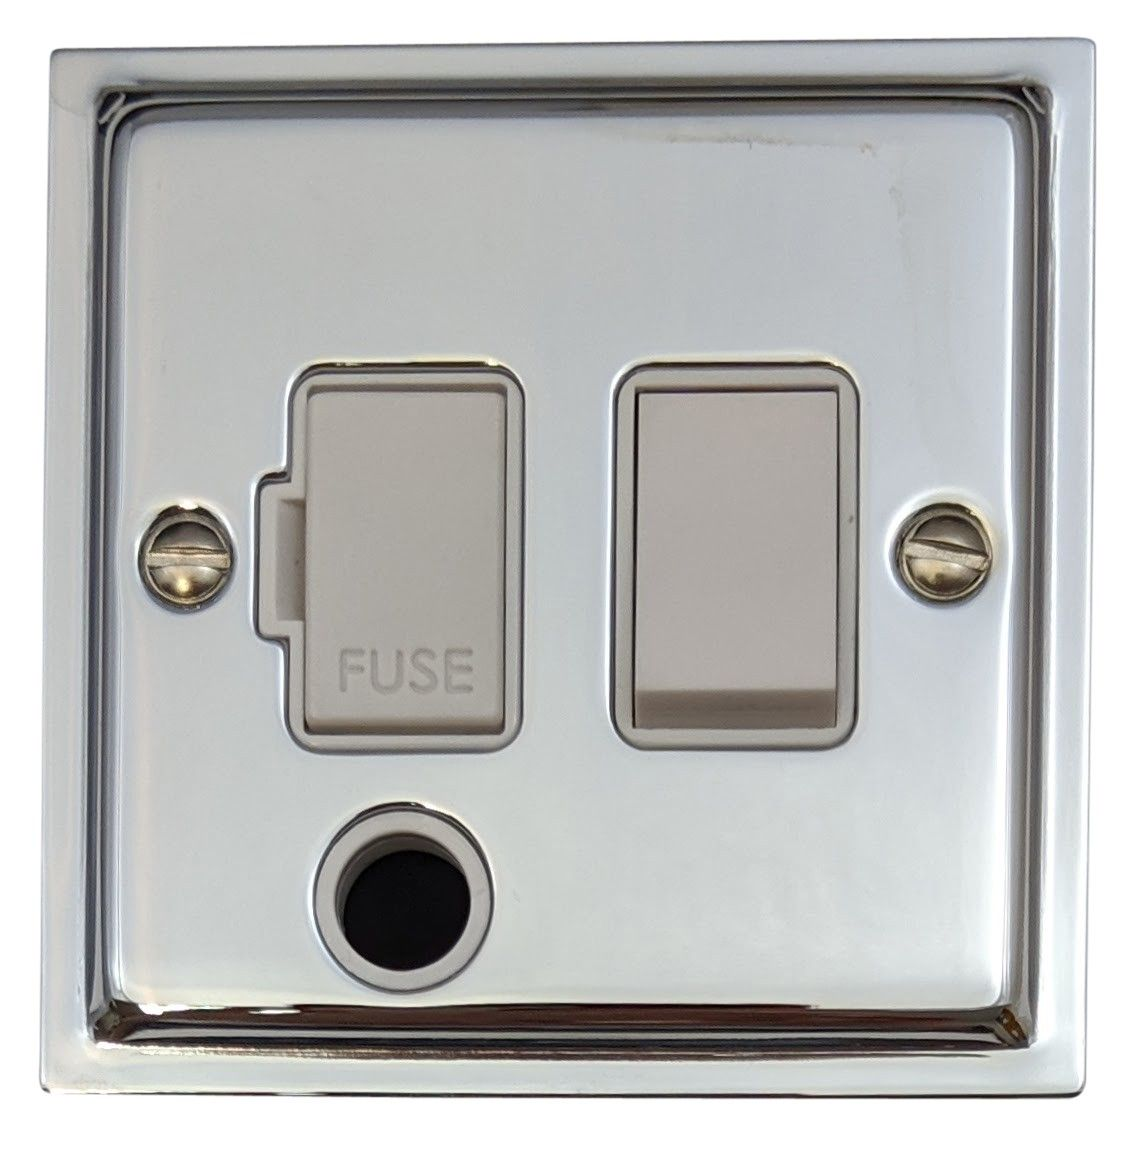 G&H HC56W Highline Plate Polished Chrome 1 Gang Fused Spur 13A Switched & Flex Outlet